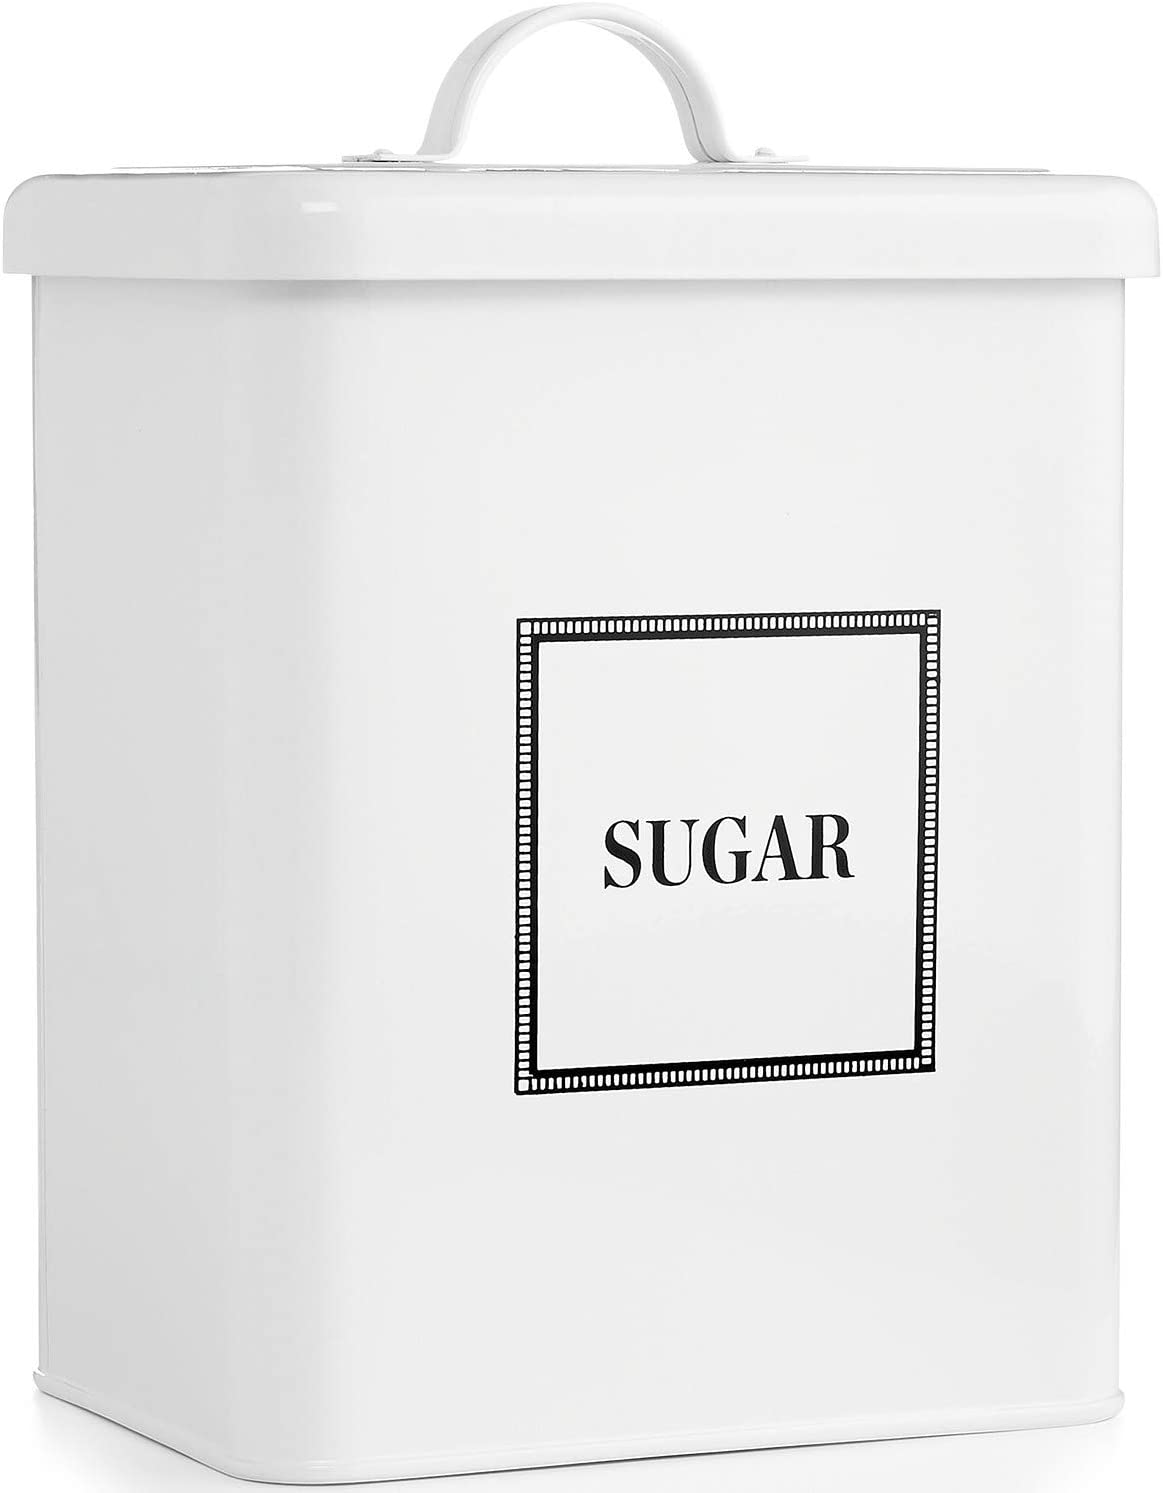 Martha Stewart Collection 16-Cup Vintage-Inspired Food Storage Canister - Sugar